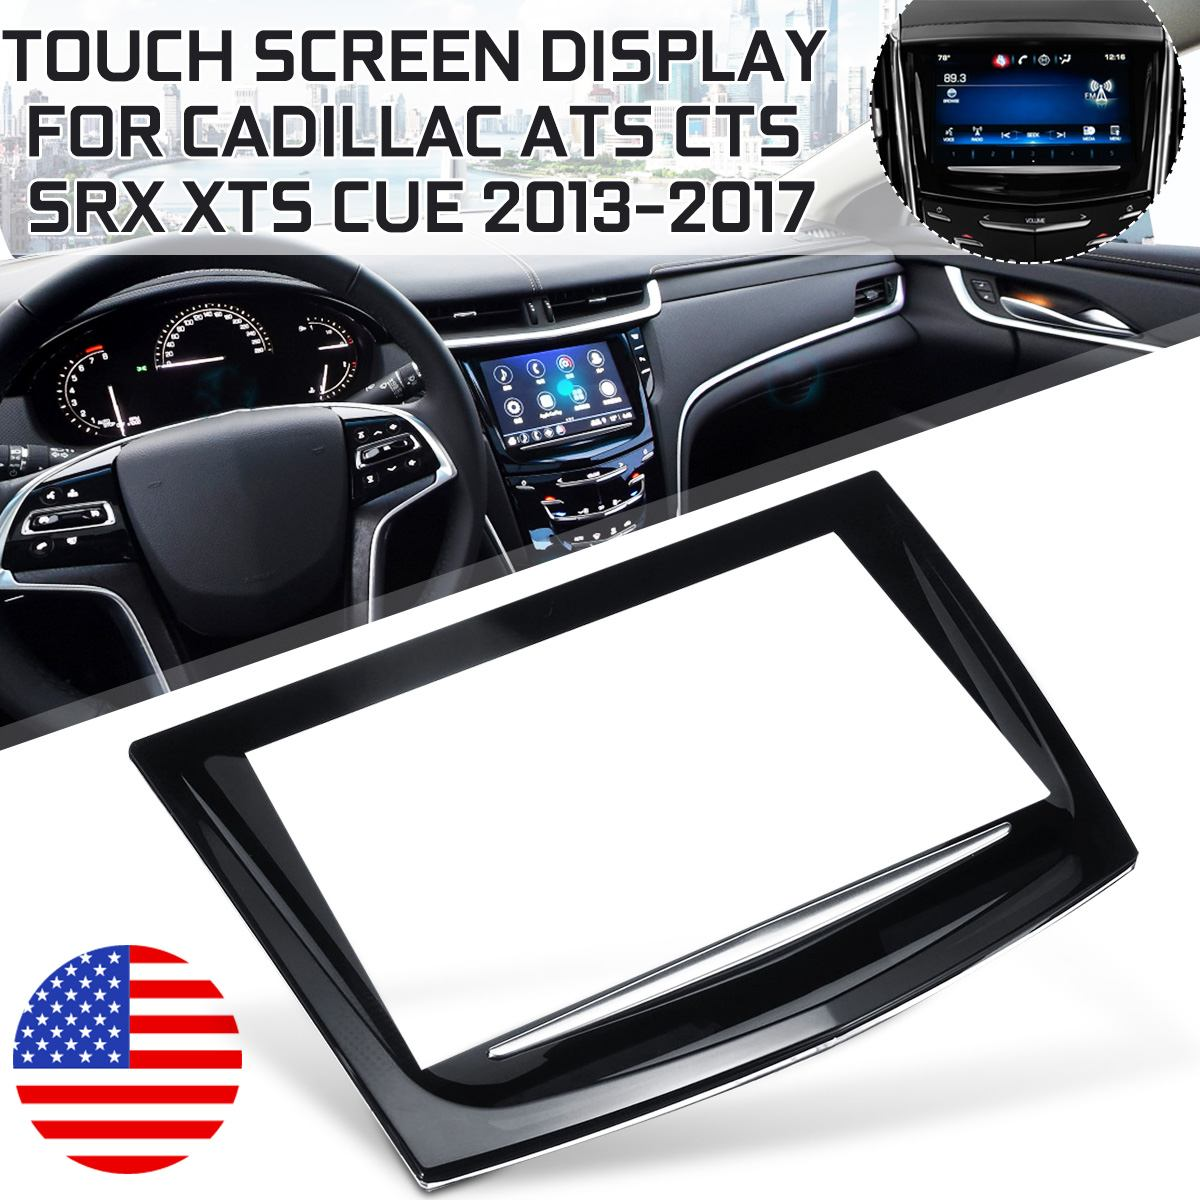 23106488 For Touch Screen Display For Cadillac Escalade ATS CTS SRX XTS CUE 2013-2017 sense for touc